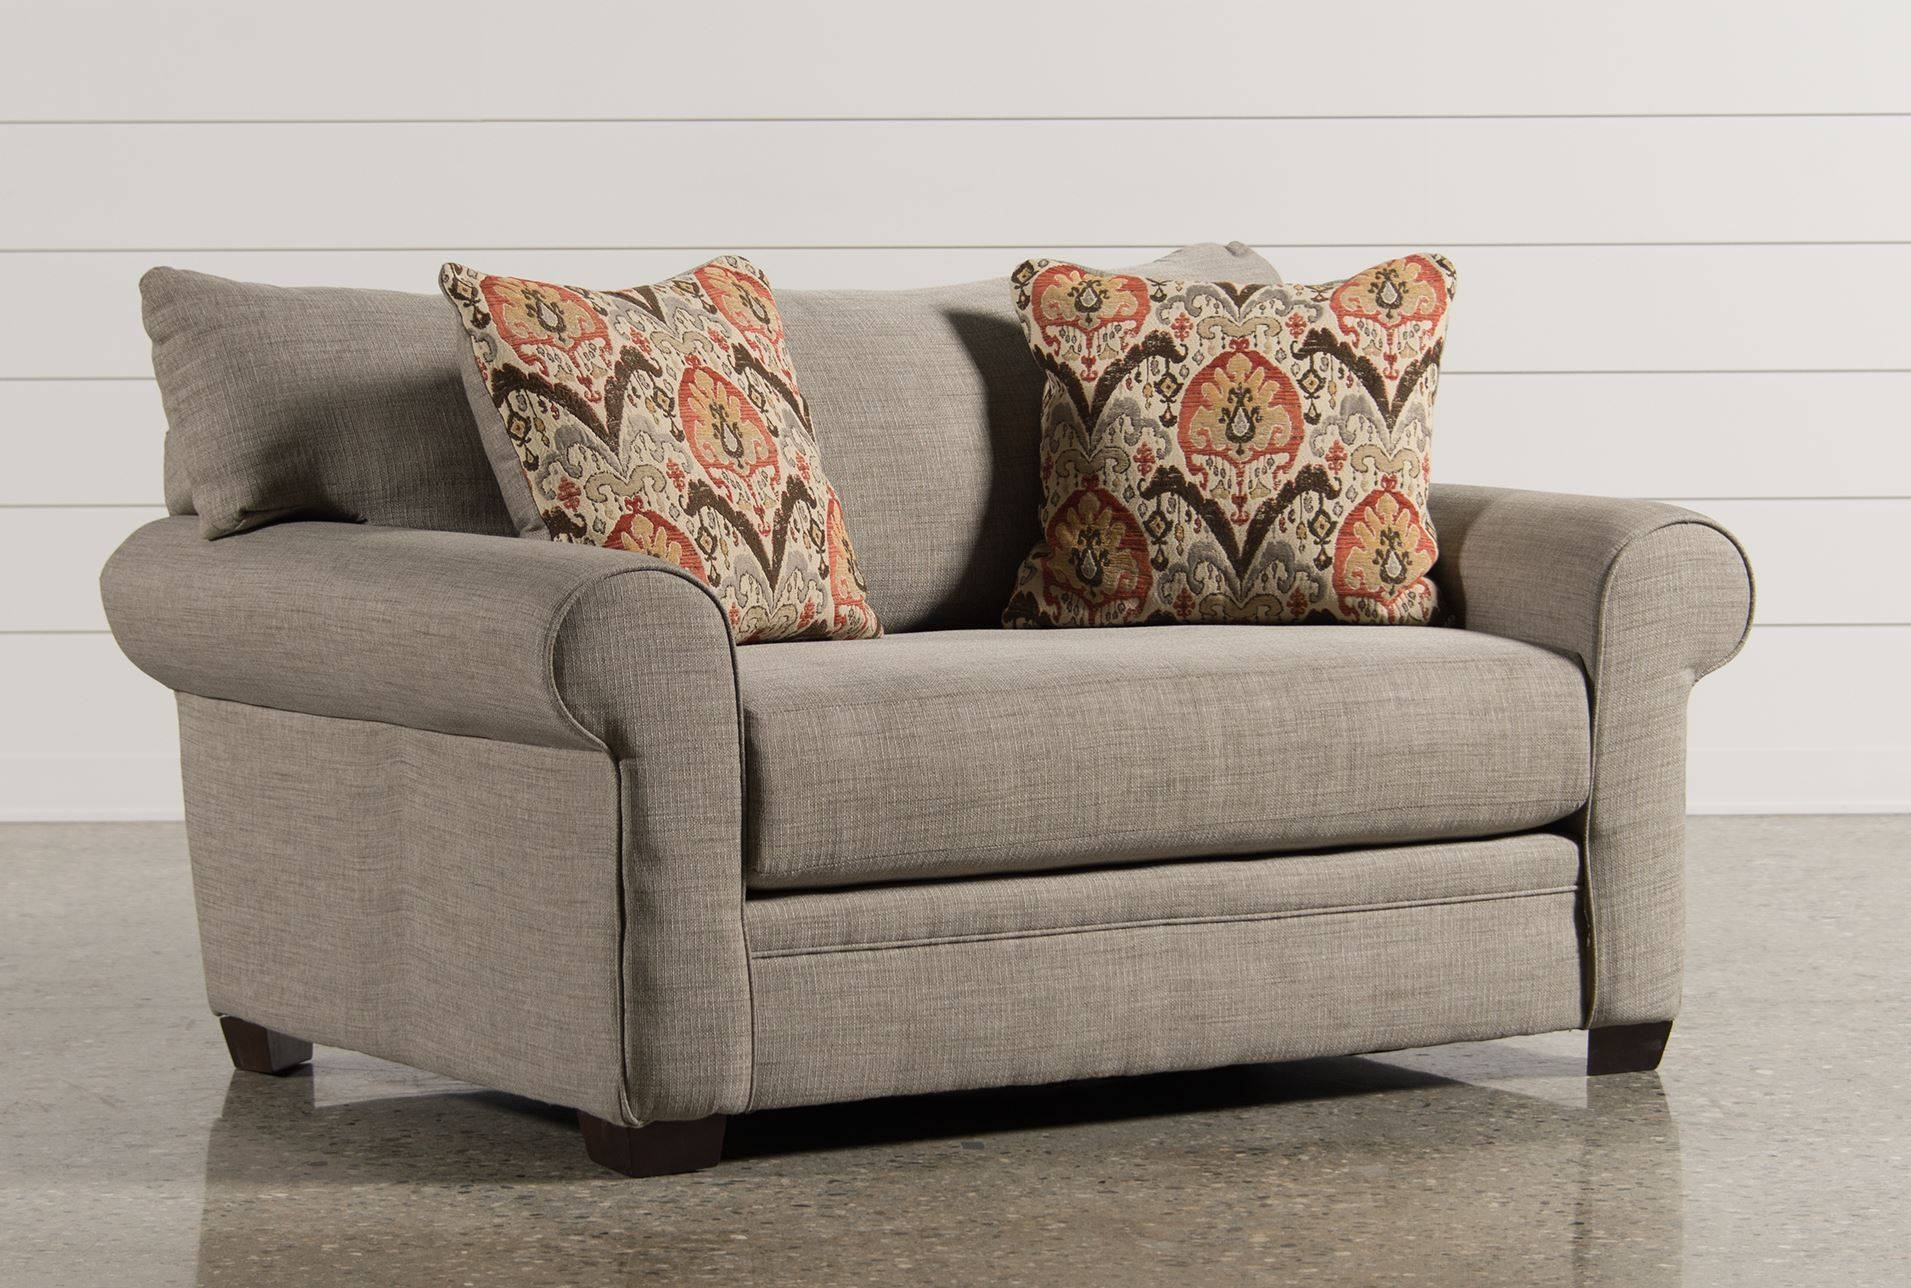 Oversized Sofas And Chairs | Sofas Decoration for Sofa Chairs (Image 22 of 30)